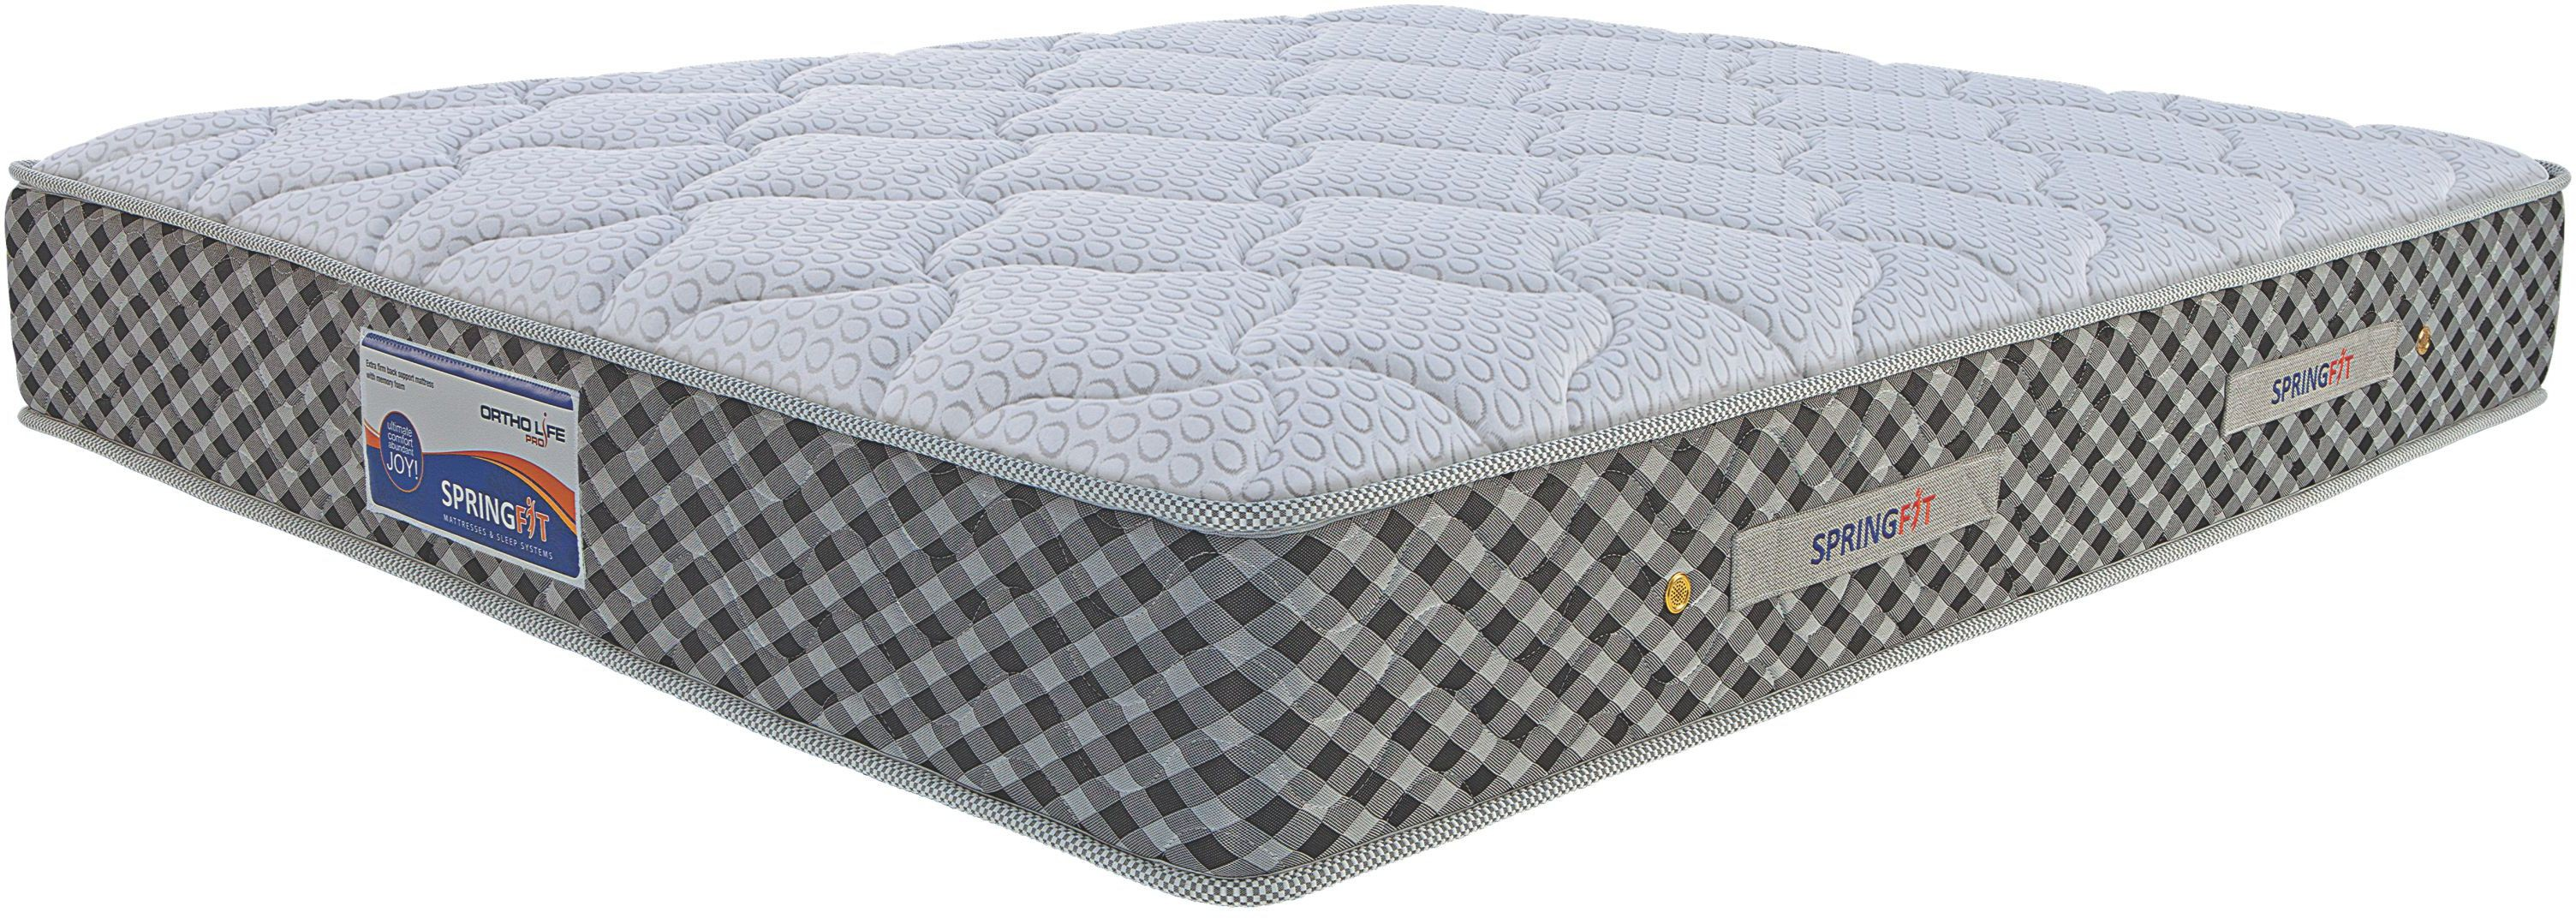 SPRINGFIT ORTHOPRO75728 8 inch King Spring Mattress